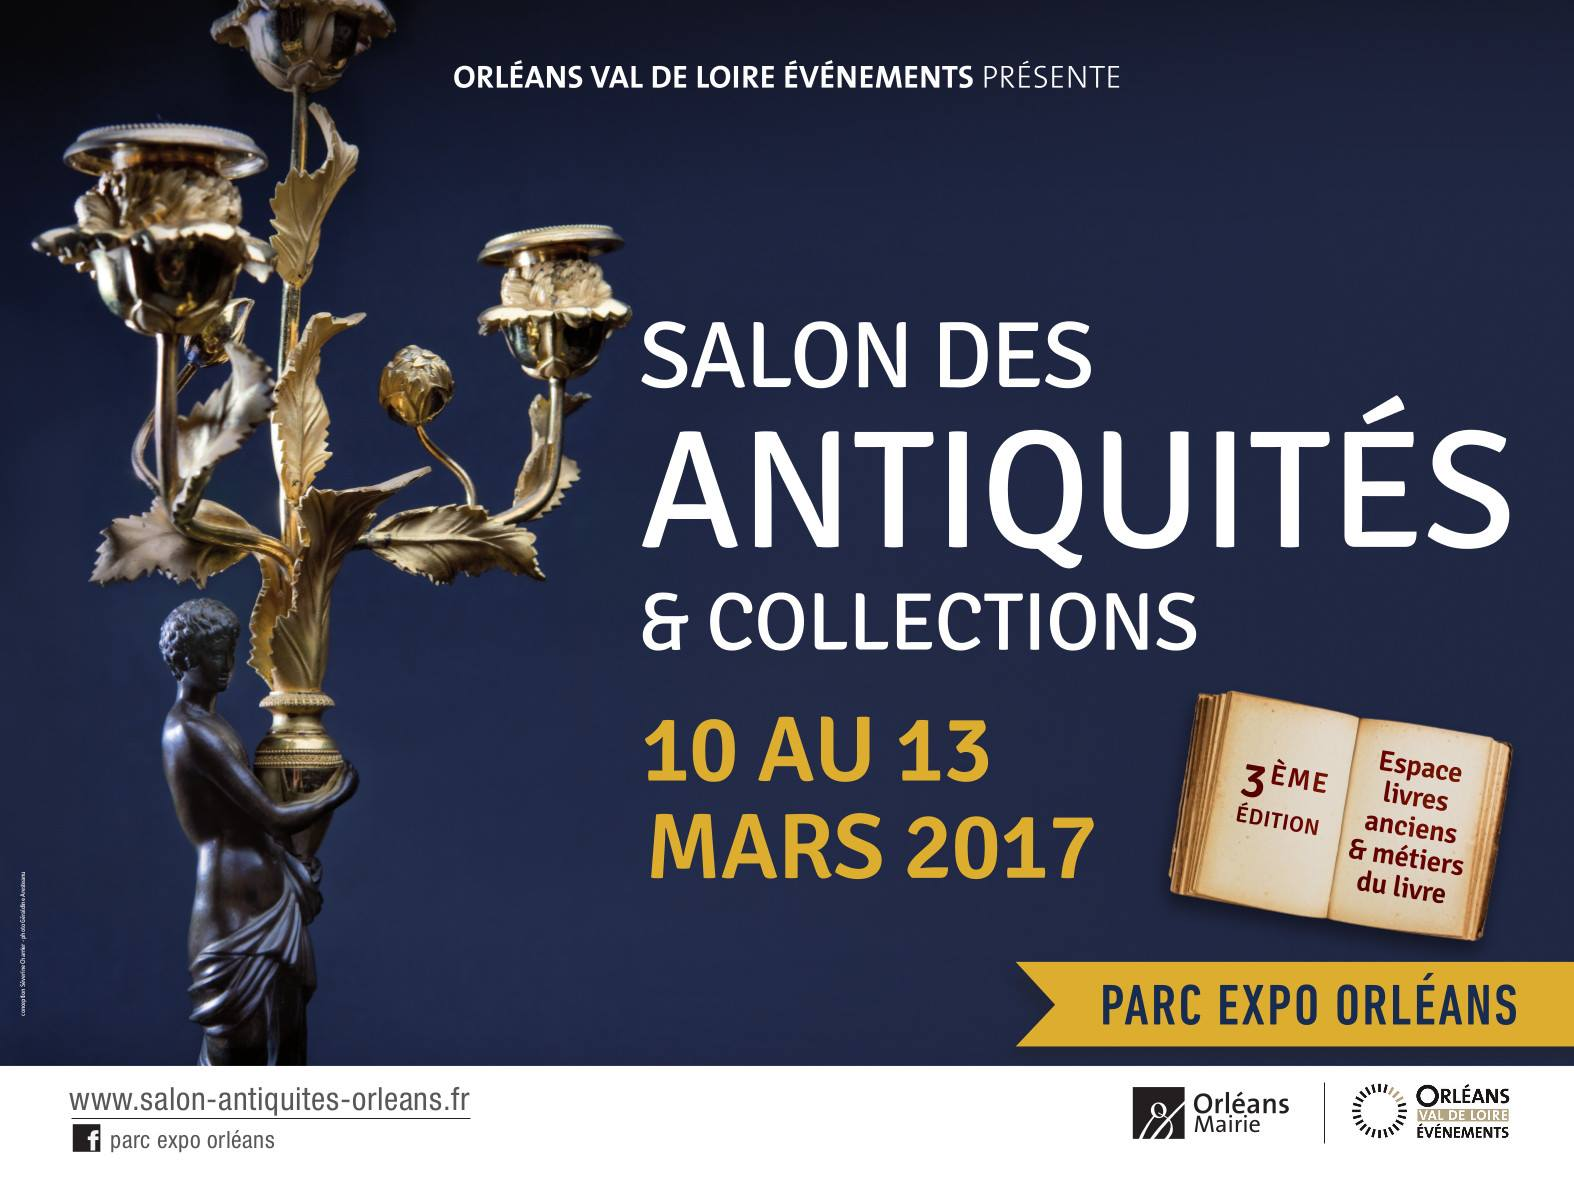 ORLEANS : LA GALERIE LE FLOCH PRESENTE CAPTON AU SALON DES ANTIQUITÉS ET COLLECTIONS